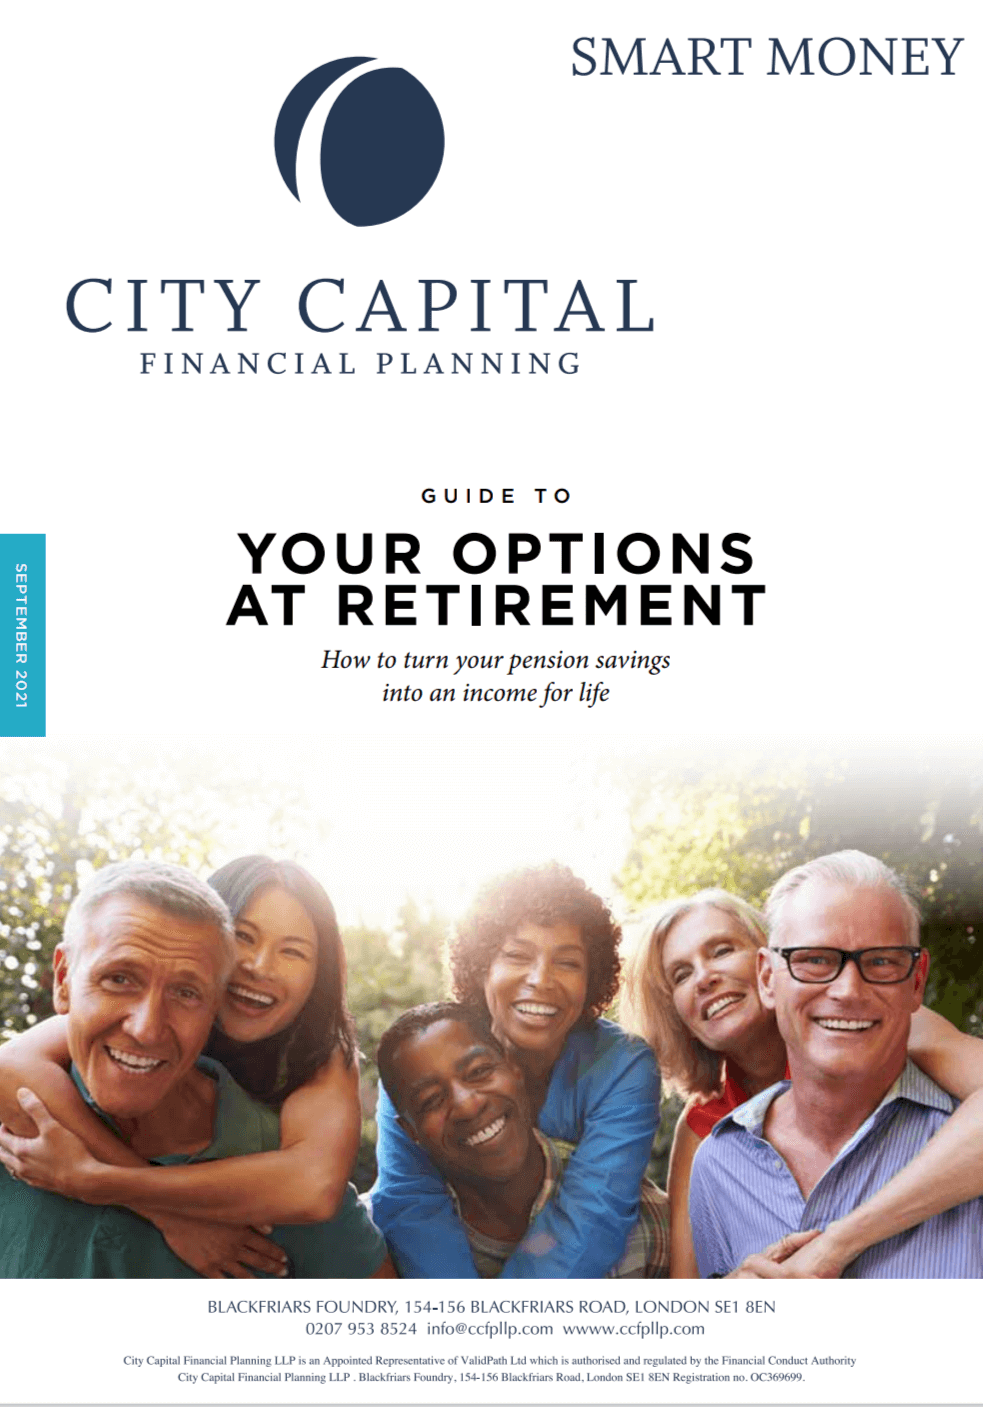 Guide to Your Options at Retirement - How to turn your pension savings into an income for life